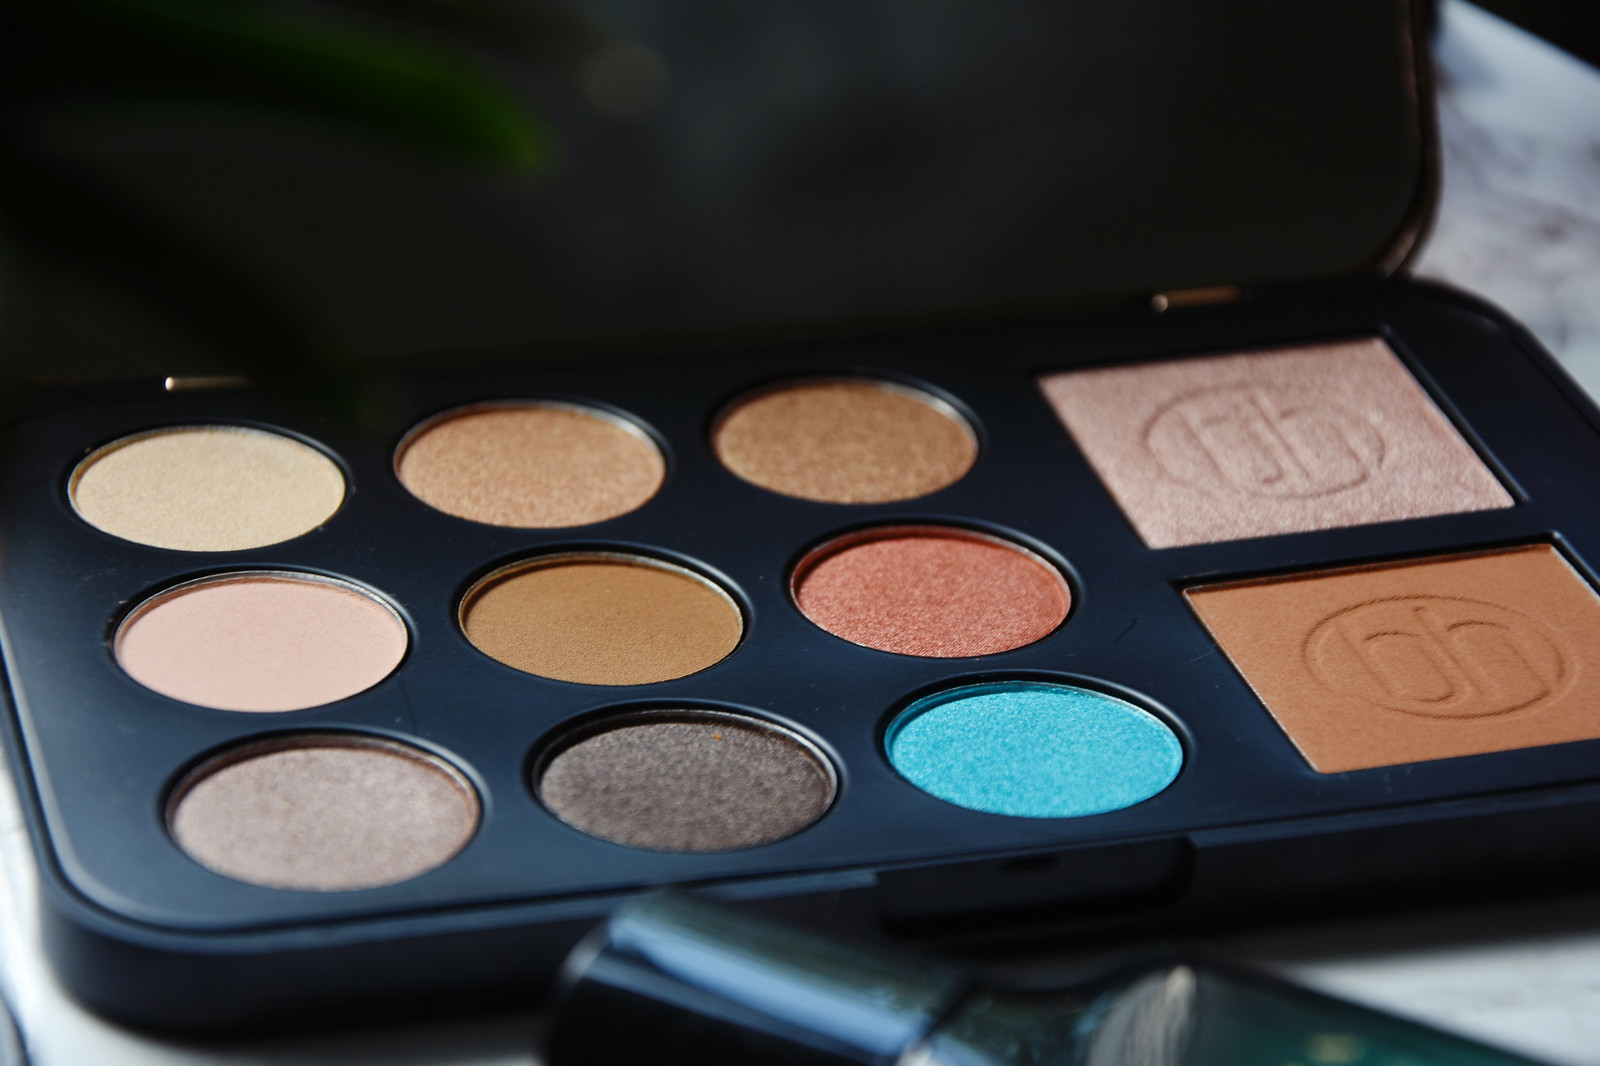 Bh Cosmetics Bronze Paradise palette review